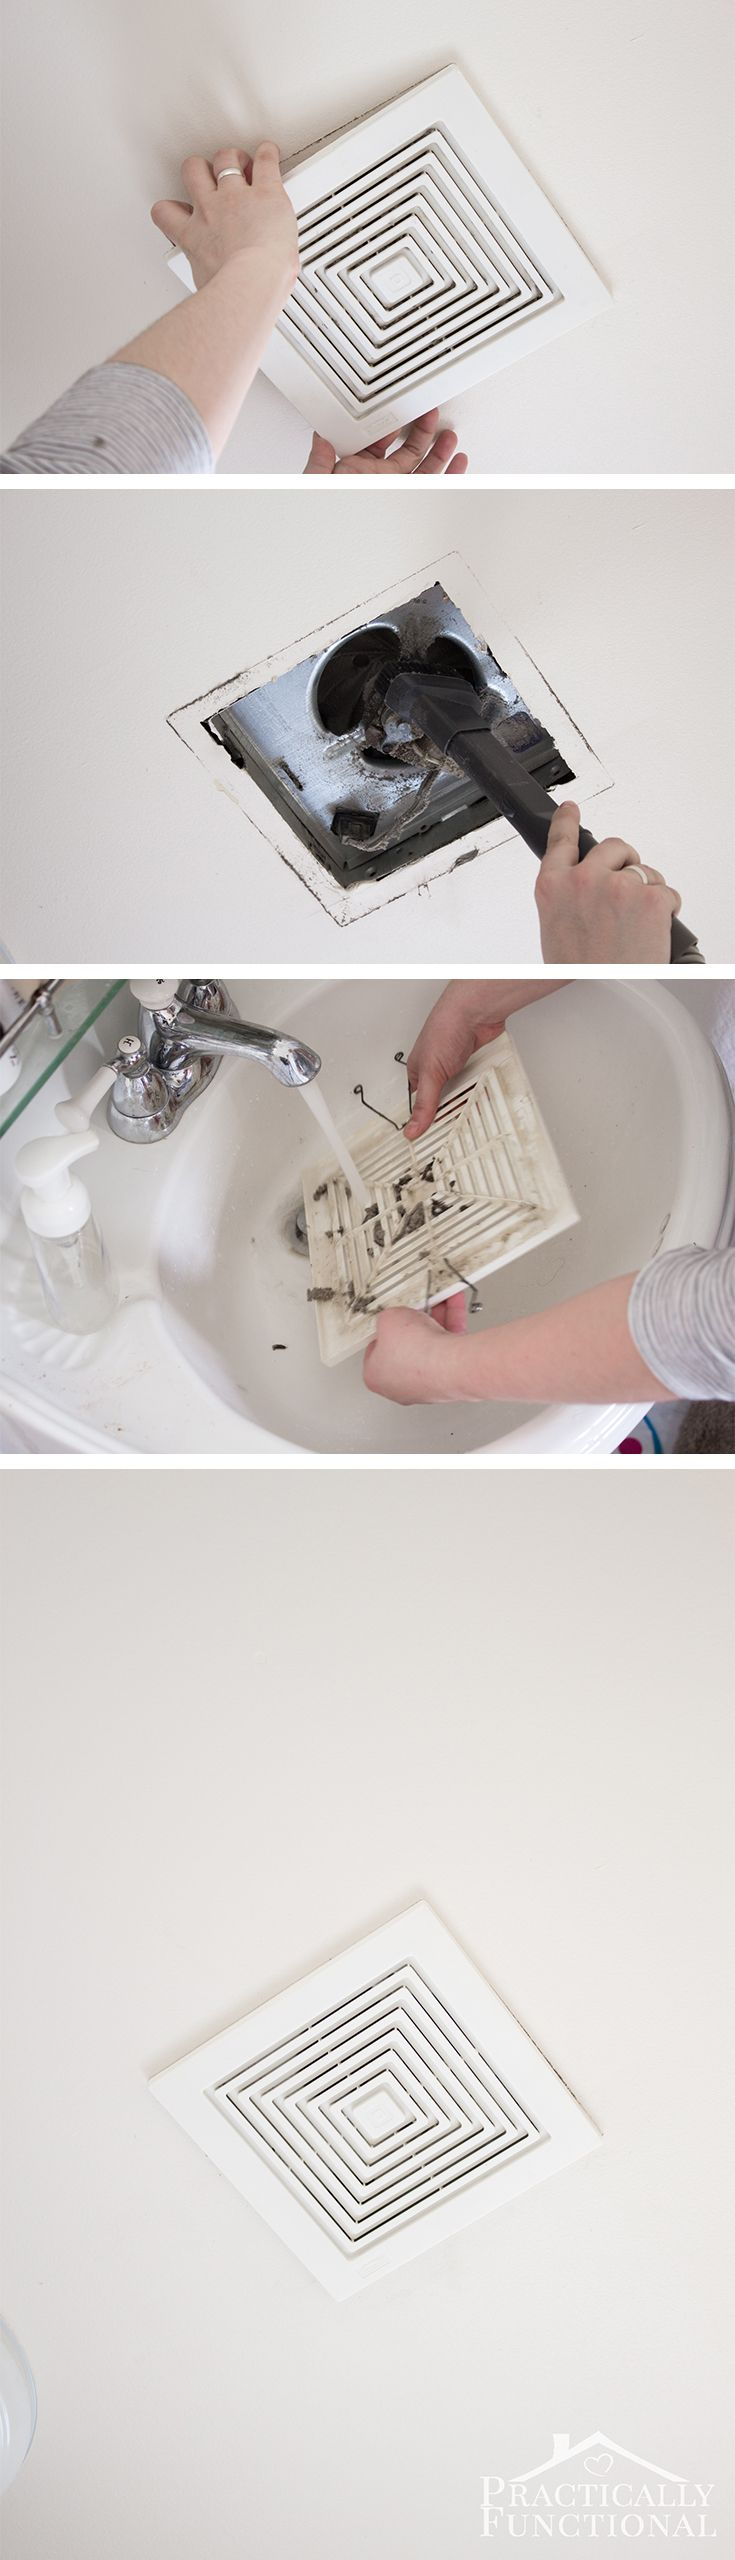 How To Clean A Bathroom Exhaust Fan Pinterest Bathroom Exhaust - How to clean bathroom exhaust fan